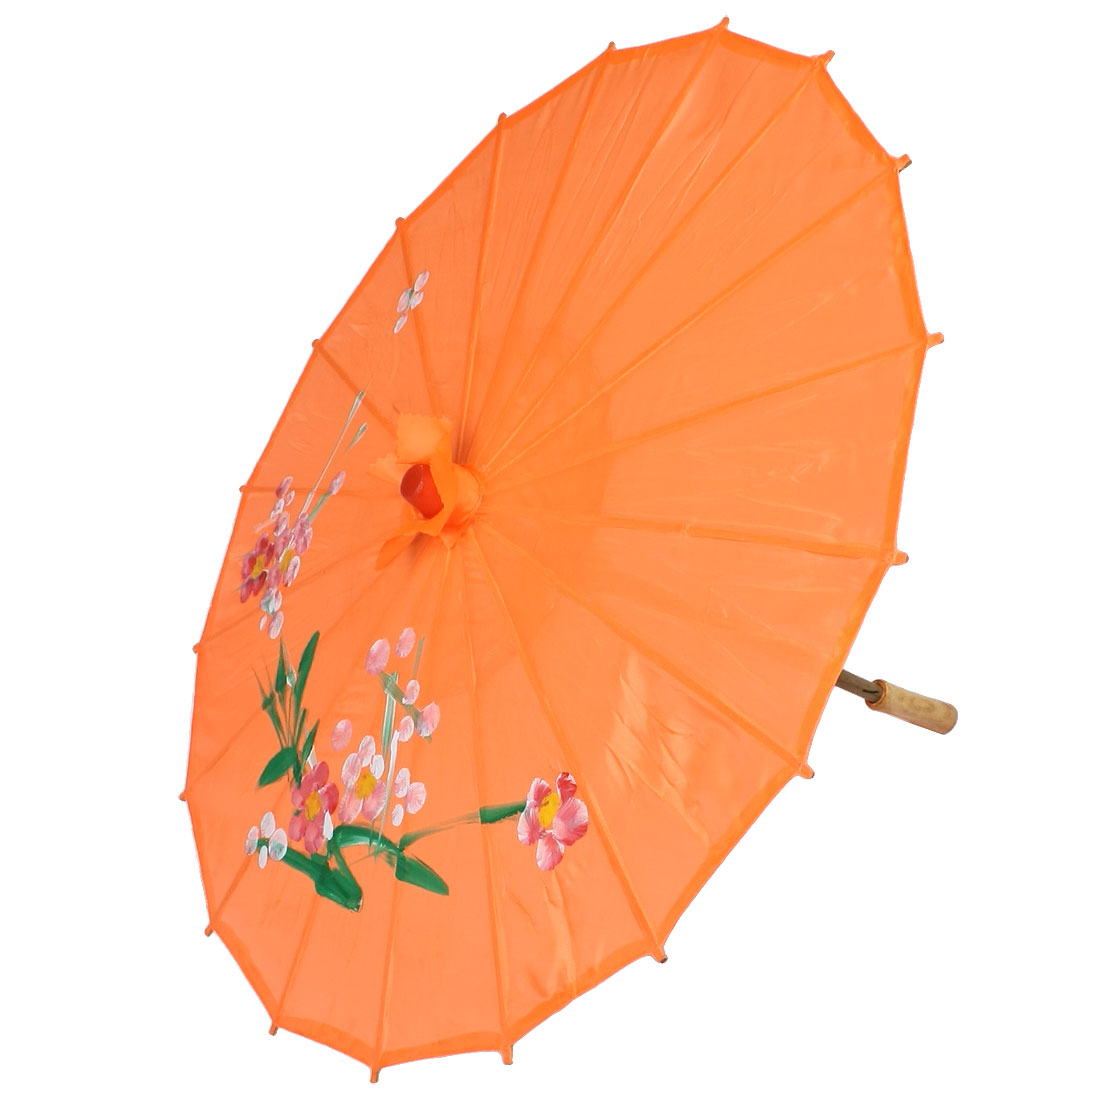 Bamboom Frame Flower Painting Parasol Orange 22 Inch for Wedding Costume Party